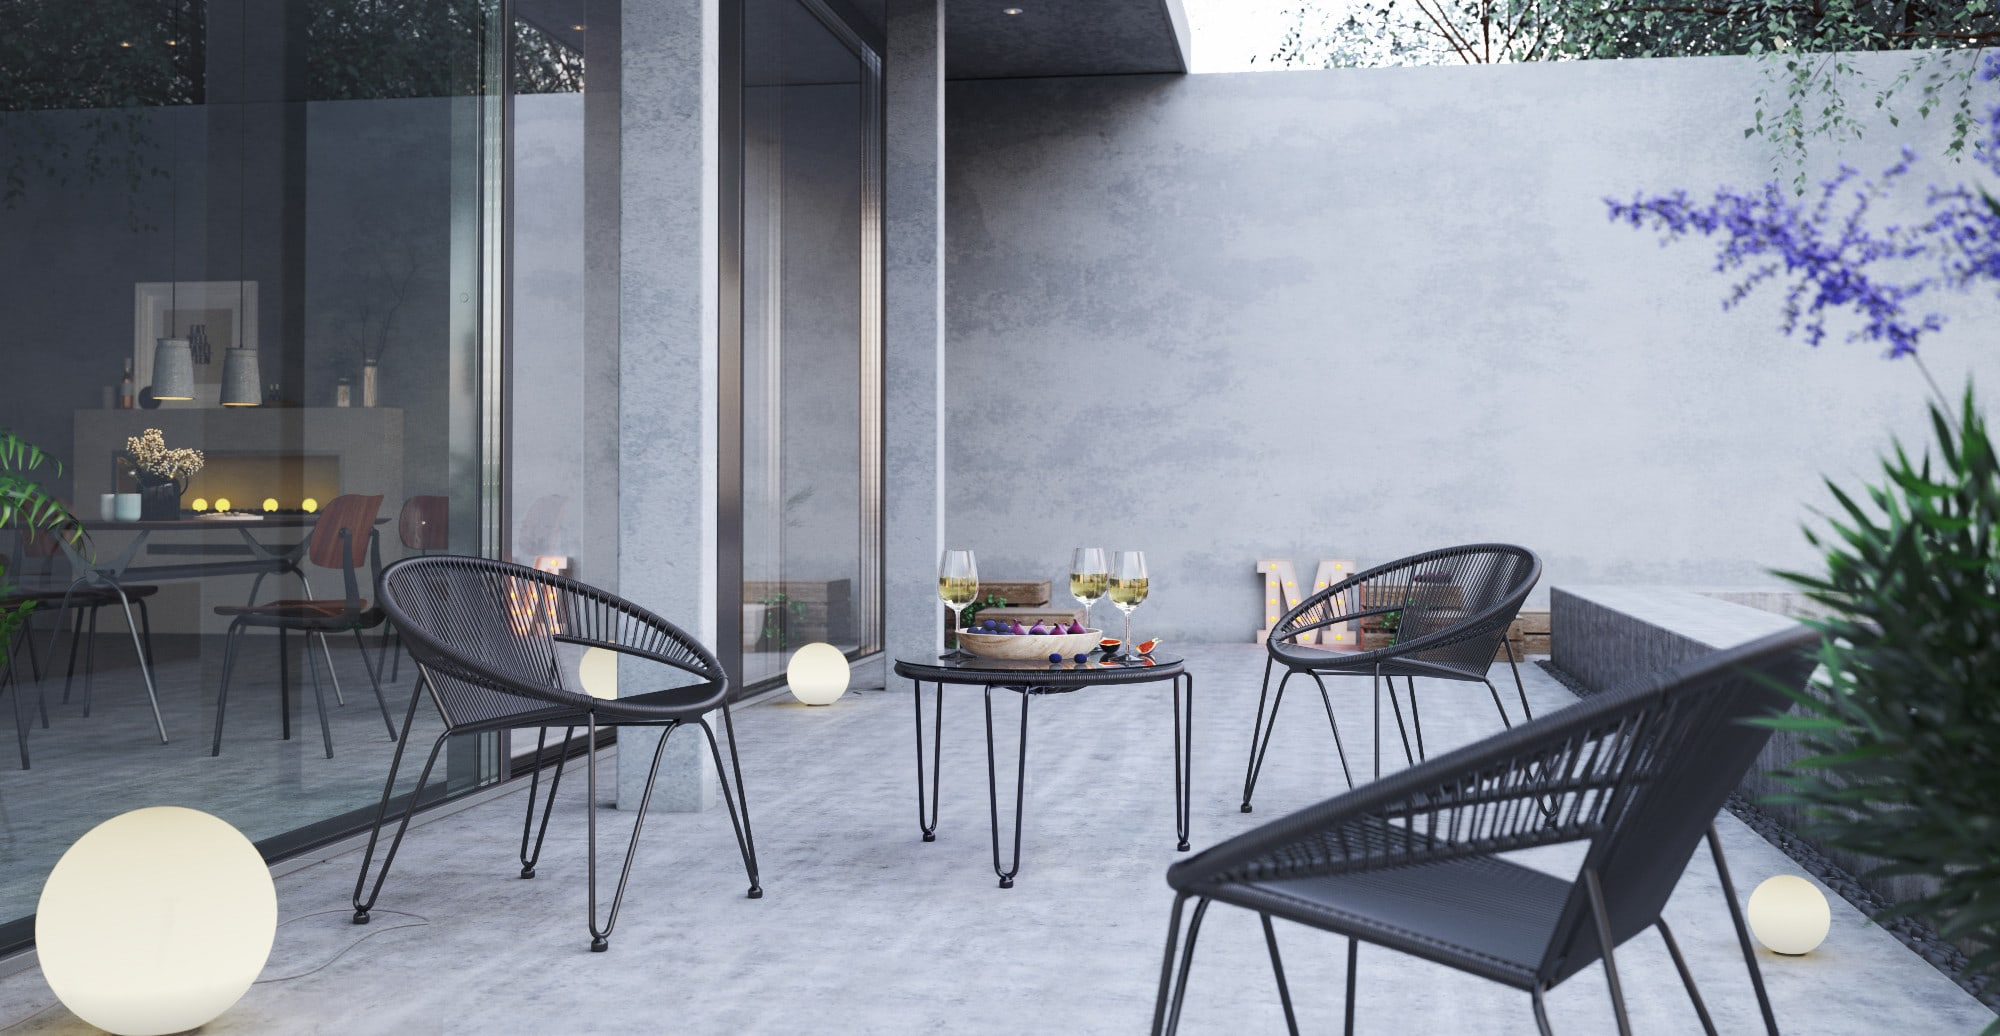 Small Outdoor Setting Part - 15: Small Muro 5 Piece Outdoor Setting 4x Accent Chairs With Coffee Table ,  Black Change